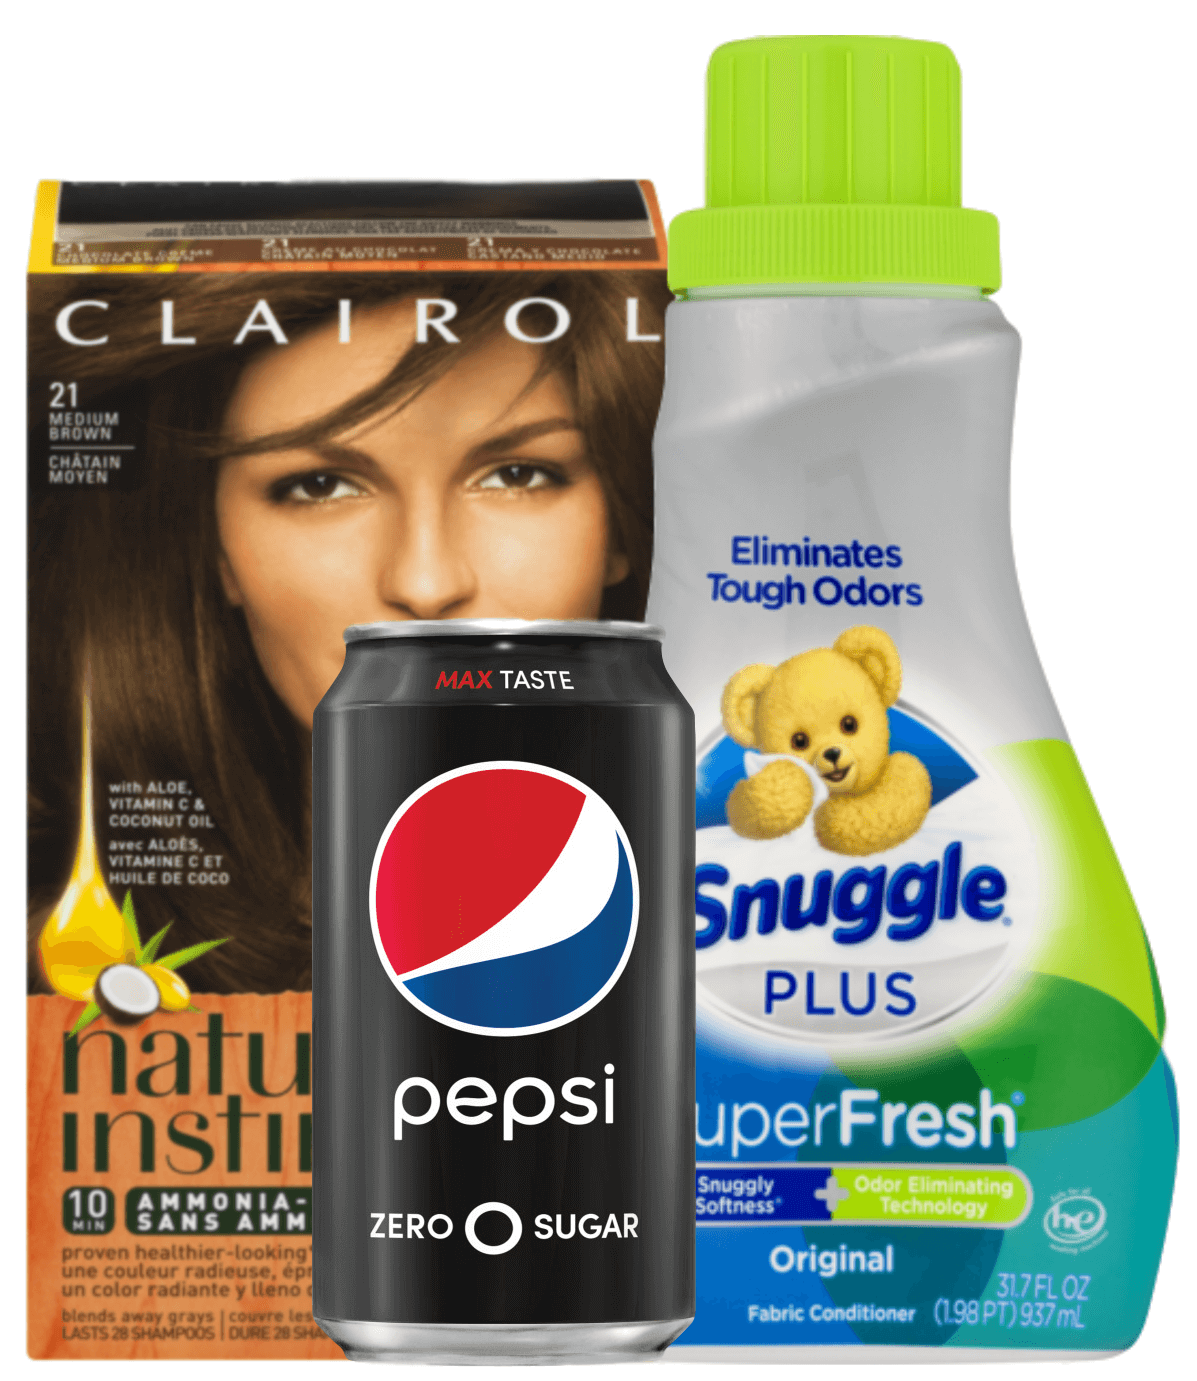 photograph about Snuggle Coupons Printable titled Todays Greatest Fresh Coupon codes - Preserve upon Snuggle, Pepsi, Clairol